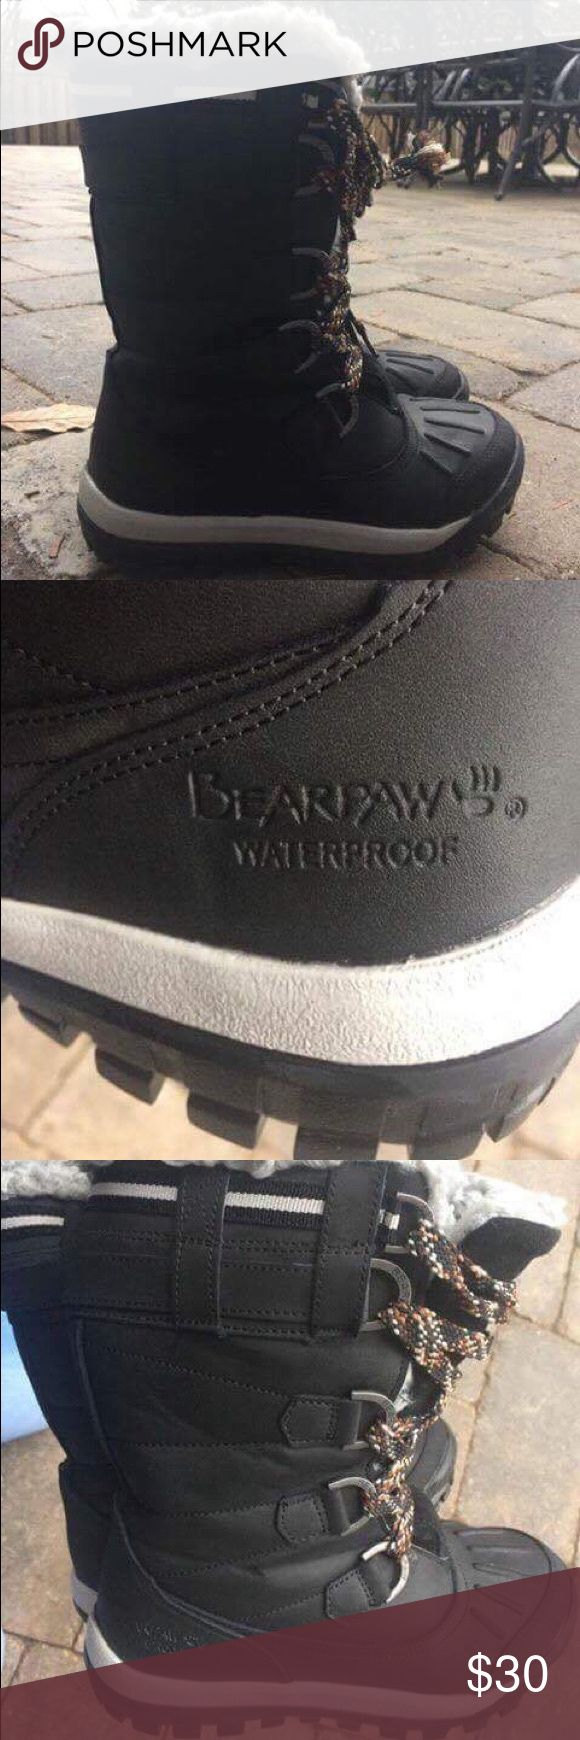 Bearpaw waterproof winter boots! Worn but in very good condition!! Size 7, water proof... Nothing will get in there, plus they are very, very warm. BearPaw Shoes Winter & Rain Boots